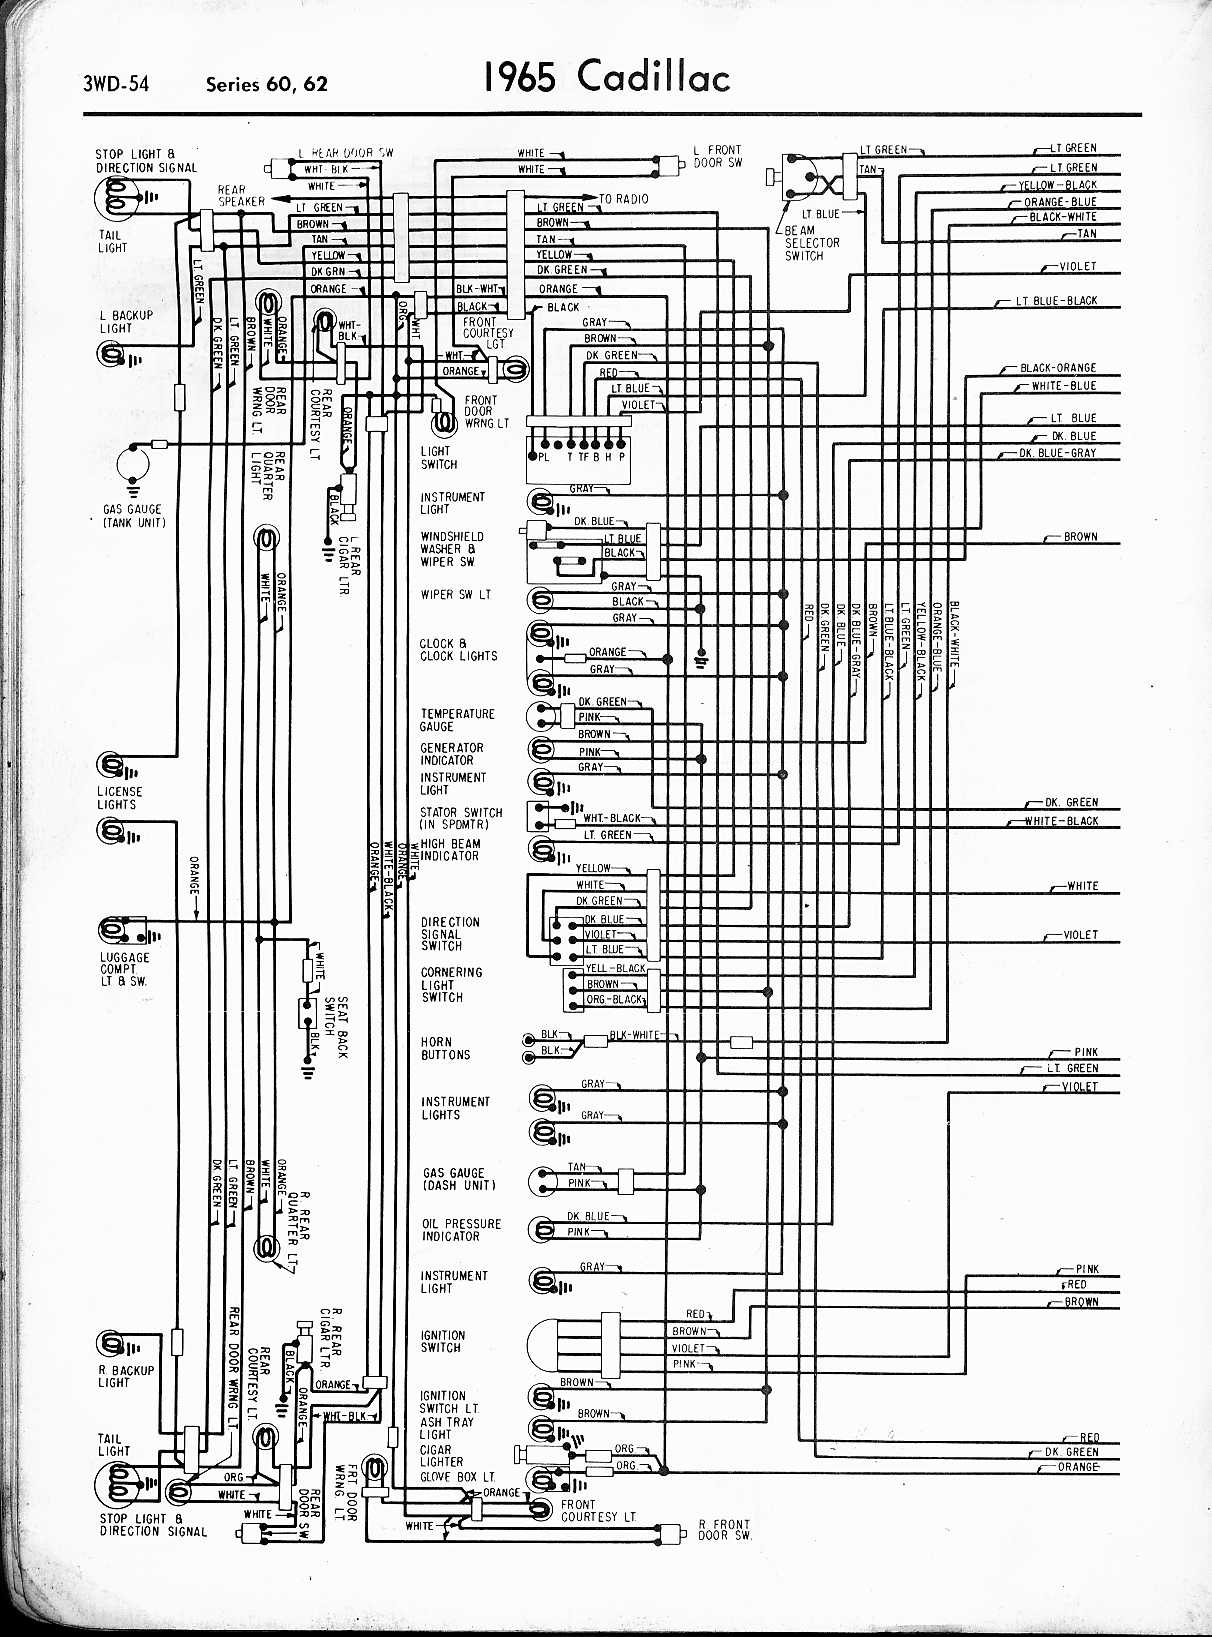 1969 cadillac wiring diagram basic wiring diagram u2022 rh dev spokeapartments com